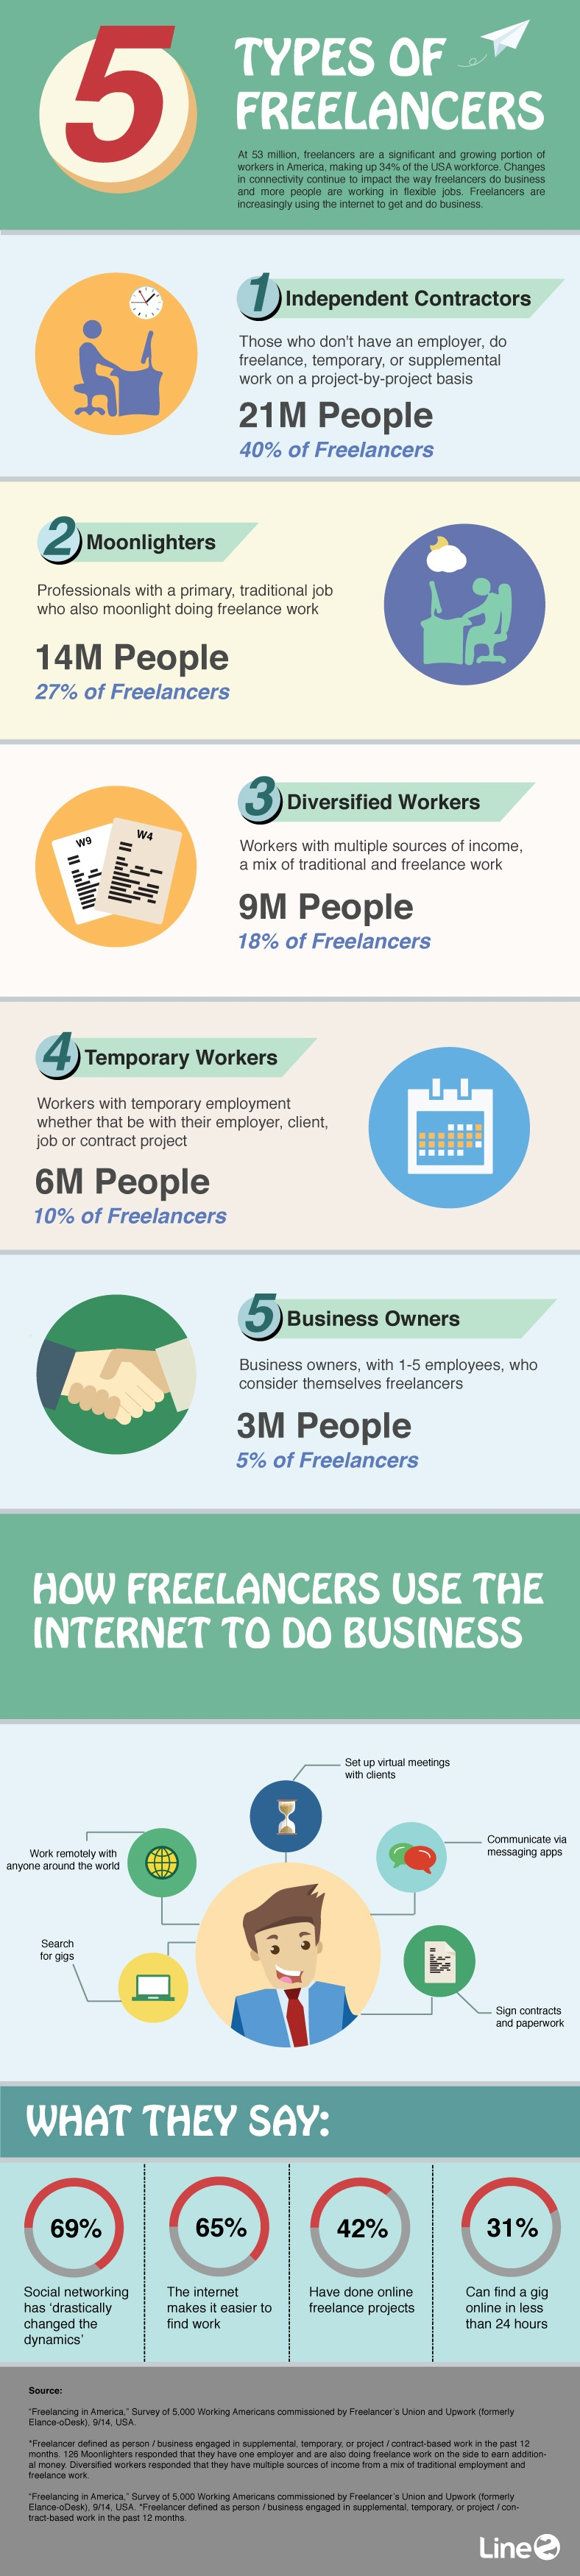 Infographic on freelancers helps small businesses understand how to find and hire freelancers